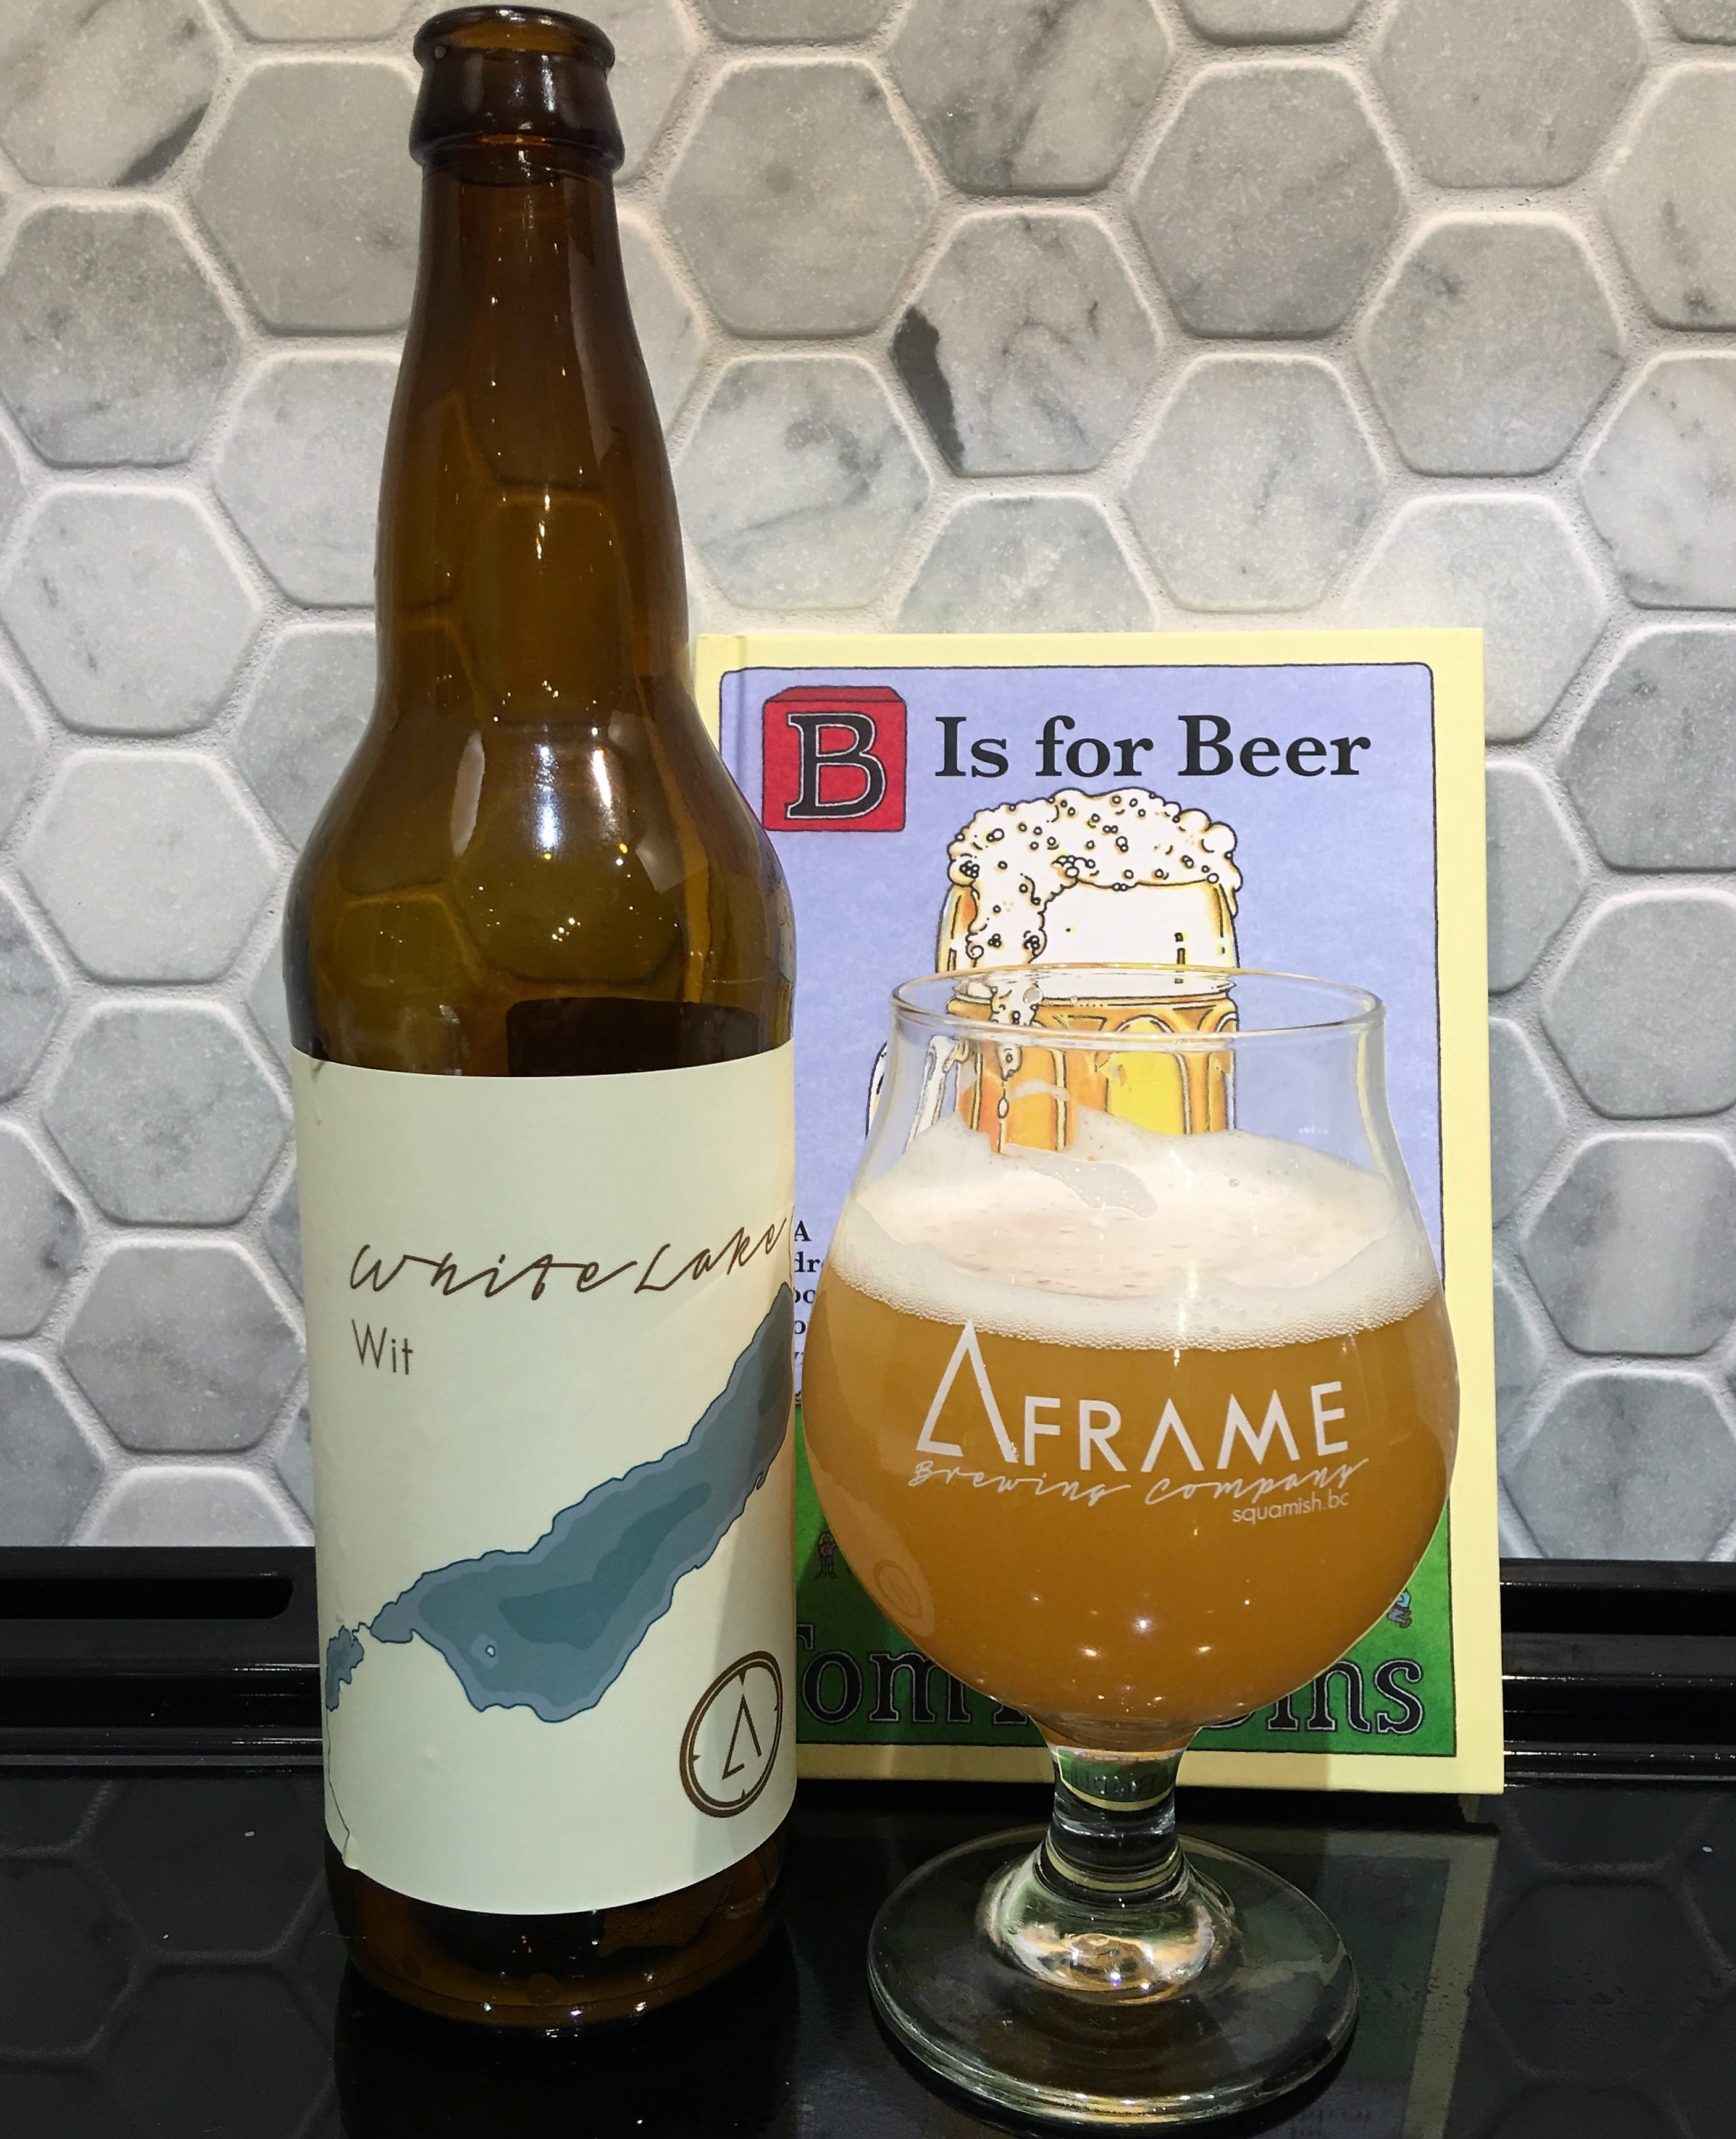 A is for A-Frame and B is for Beer…